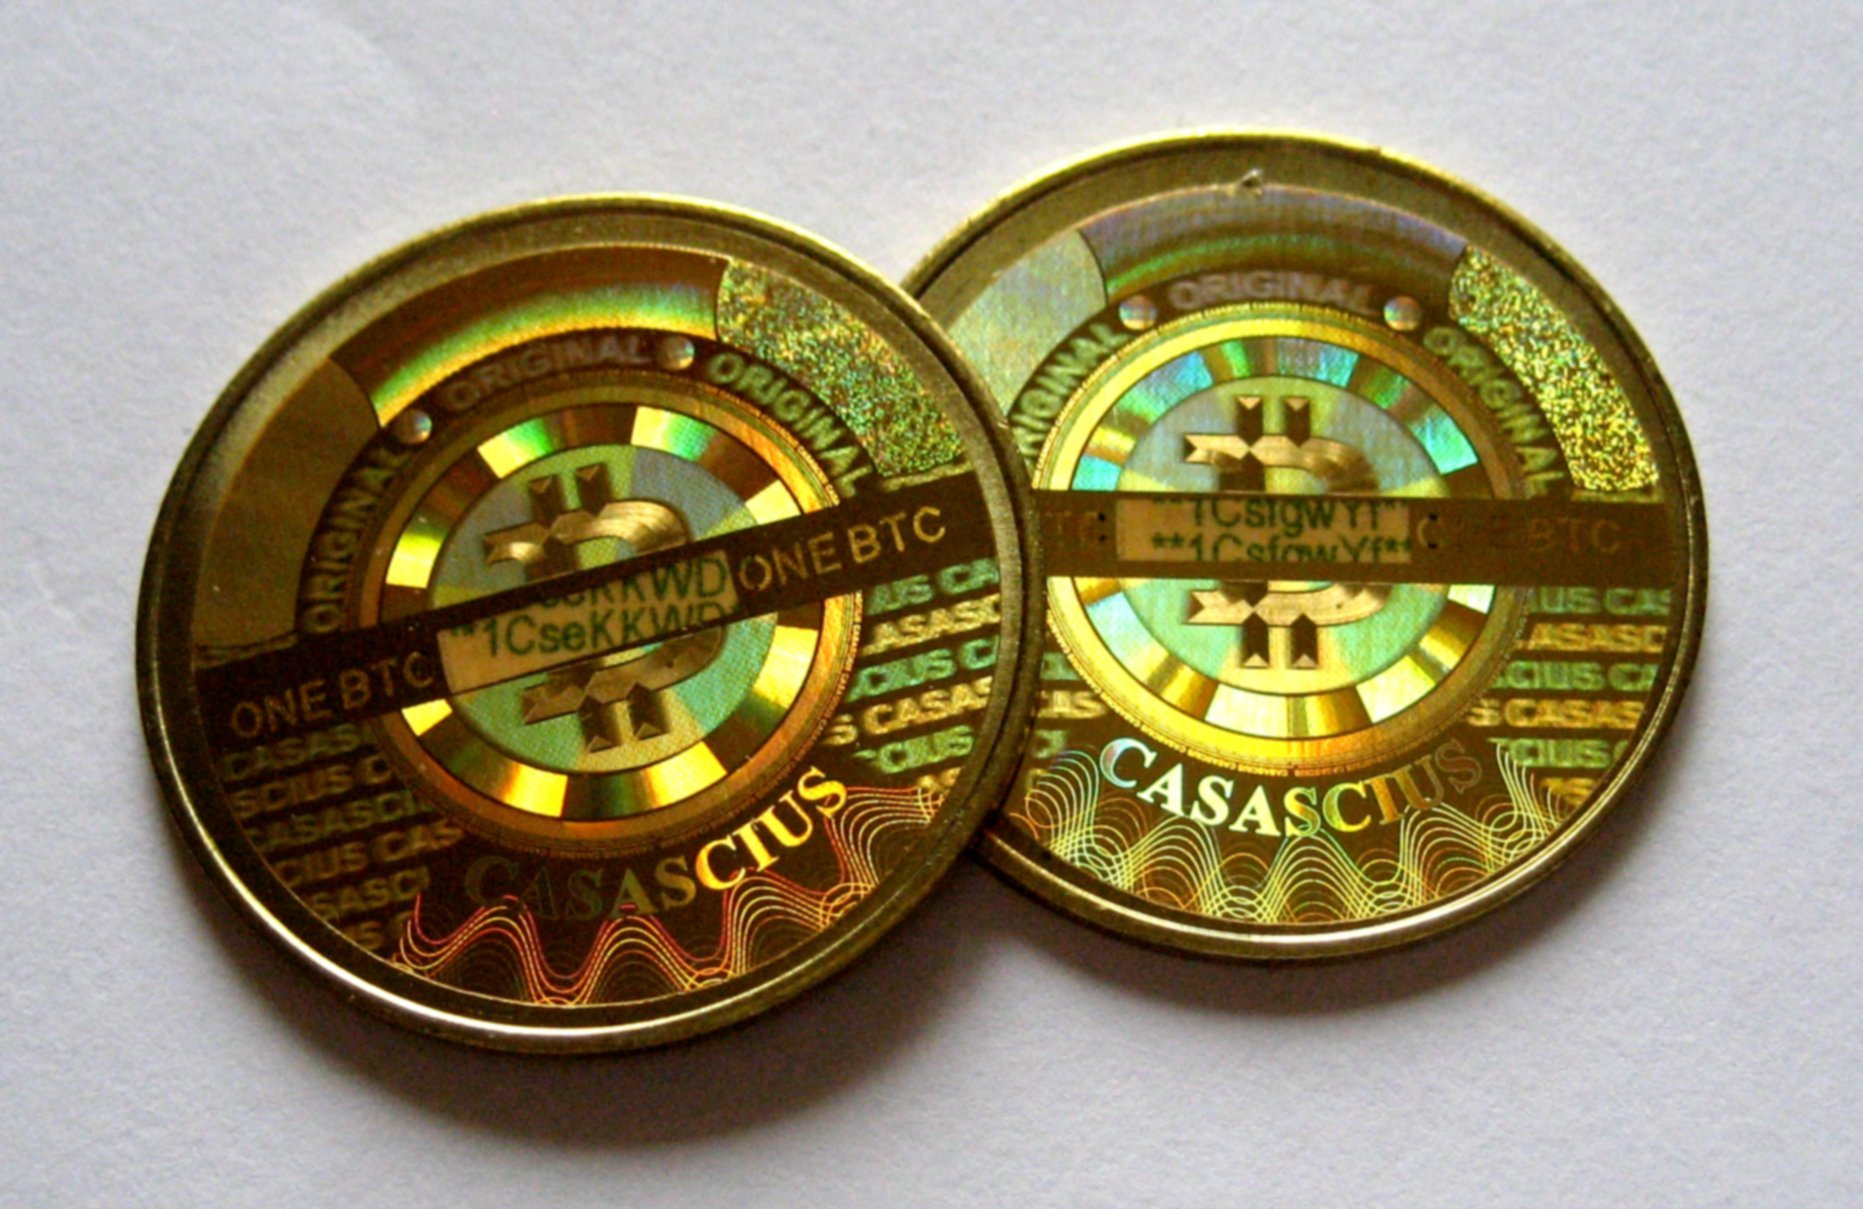 Meet Casascius: the physical Bitcoins with a real value